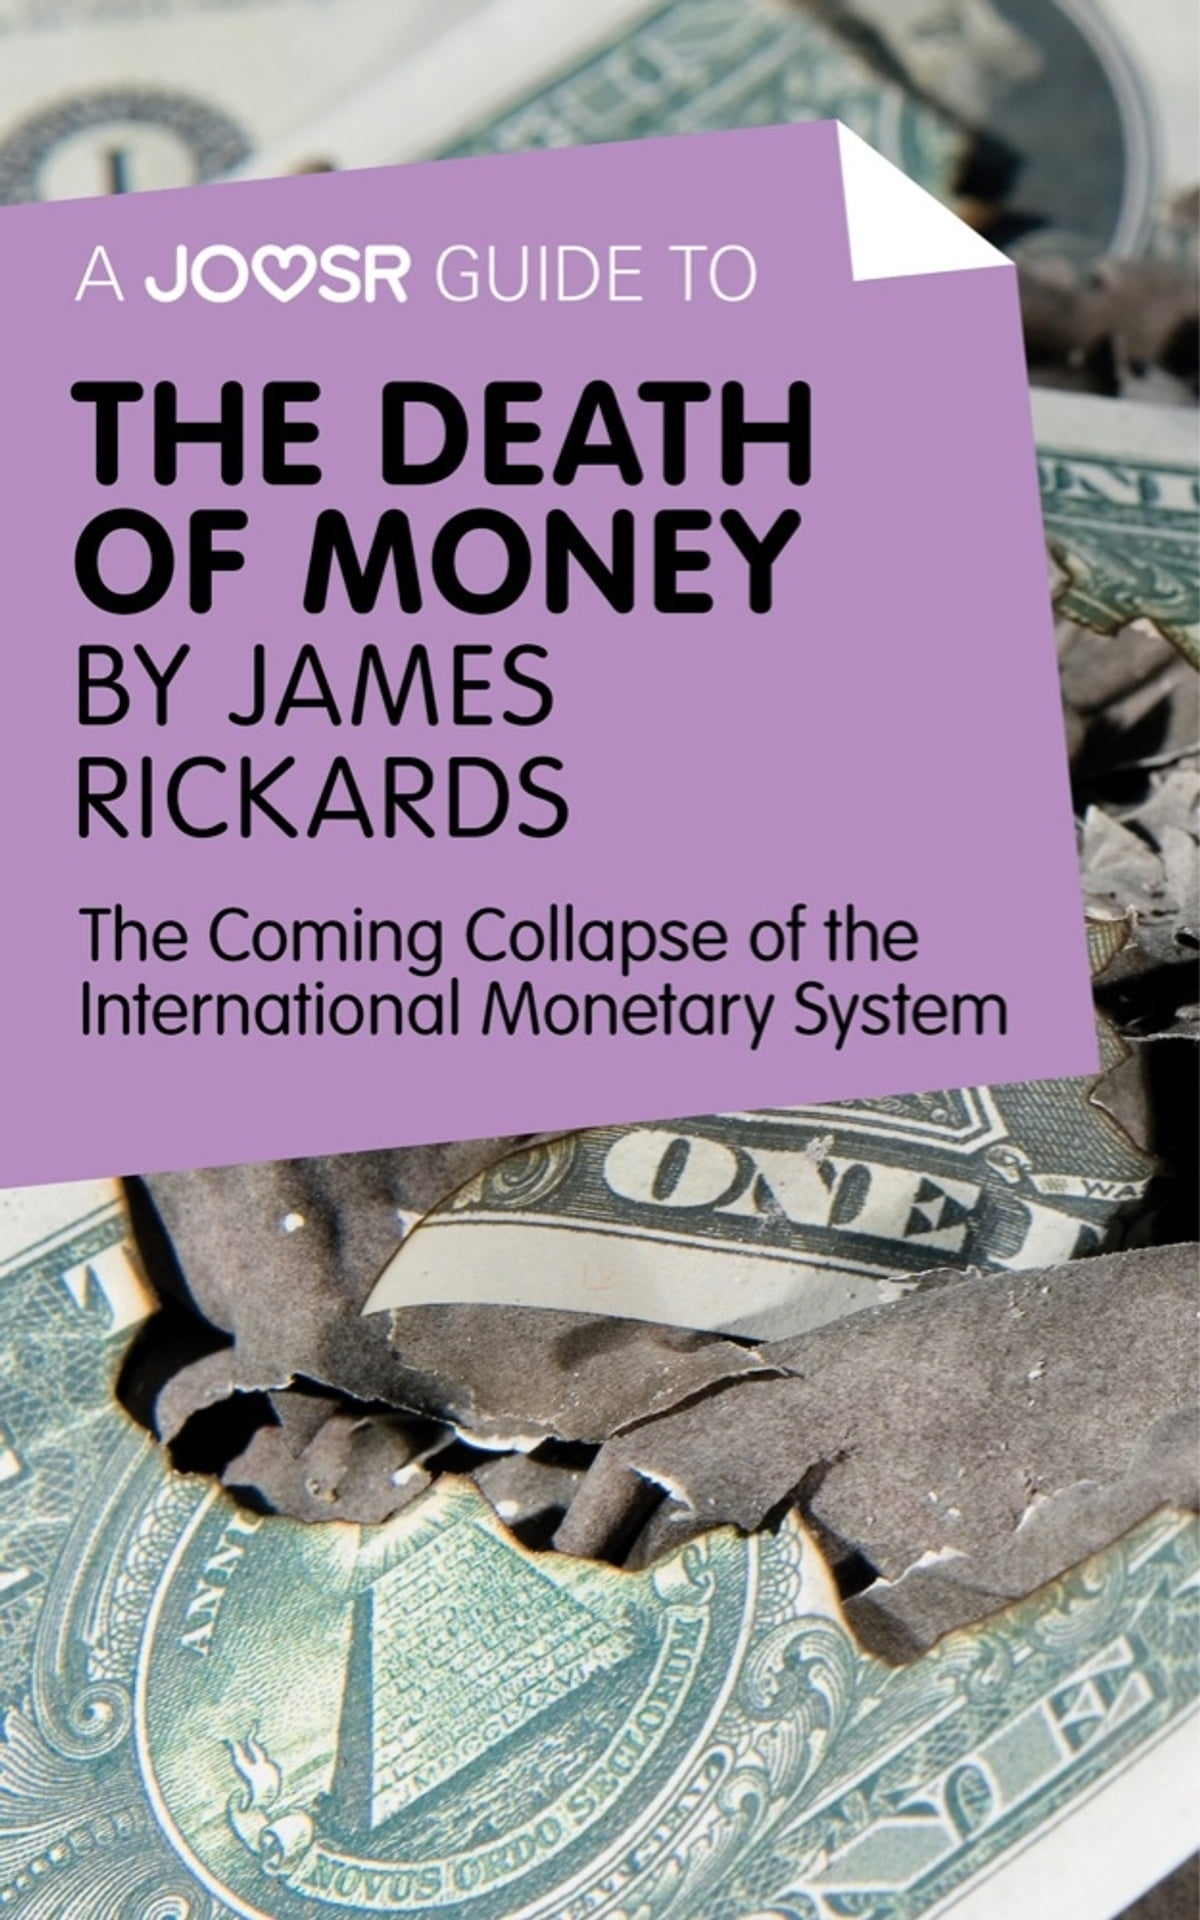 The Death of Money by James Rickards: The Coming Collapse of the  International Monetary System 電子書,分類依據 Joosr - 9781785673368 | Rakuten Kobo